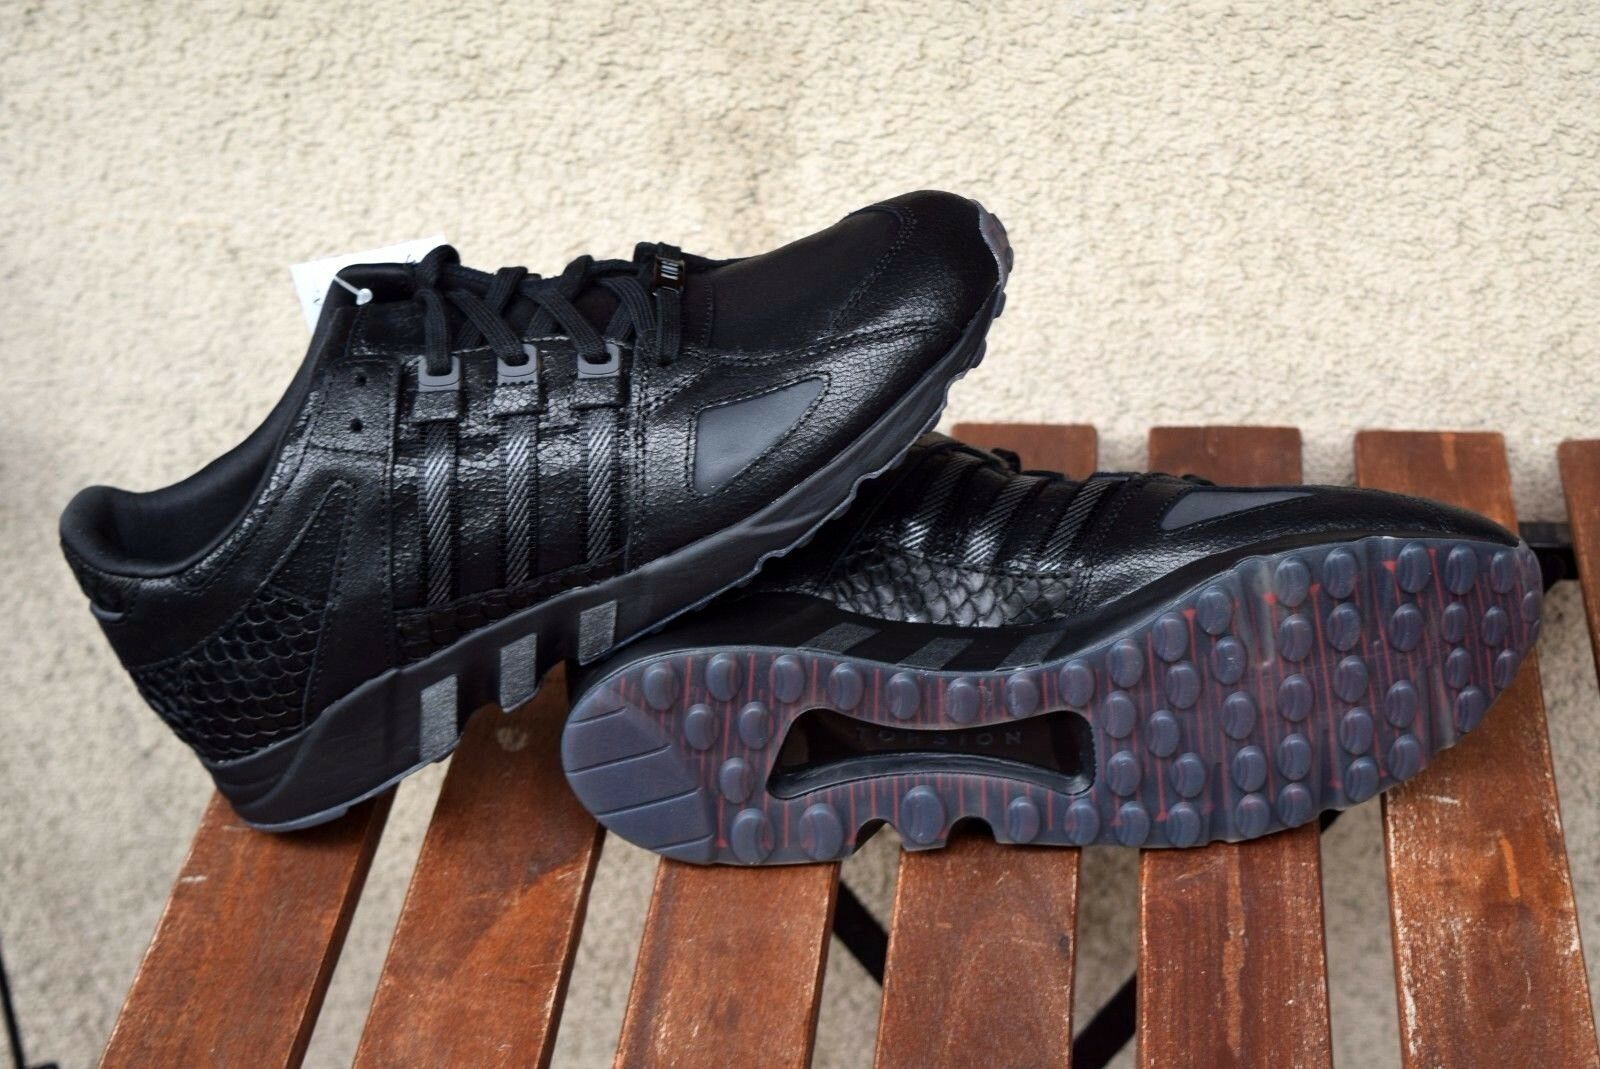 Adidas Equipment Guidance Running schwarz 48 Pusha T Tripple schwarz Running Aq7433 support 93 3057a4